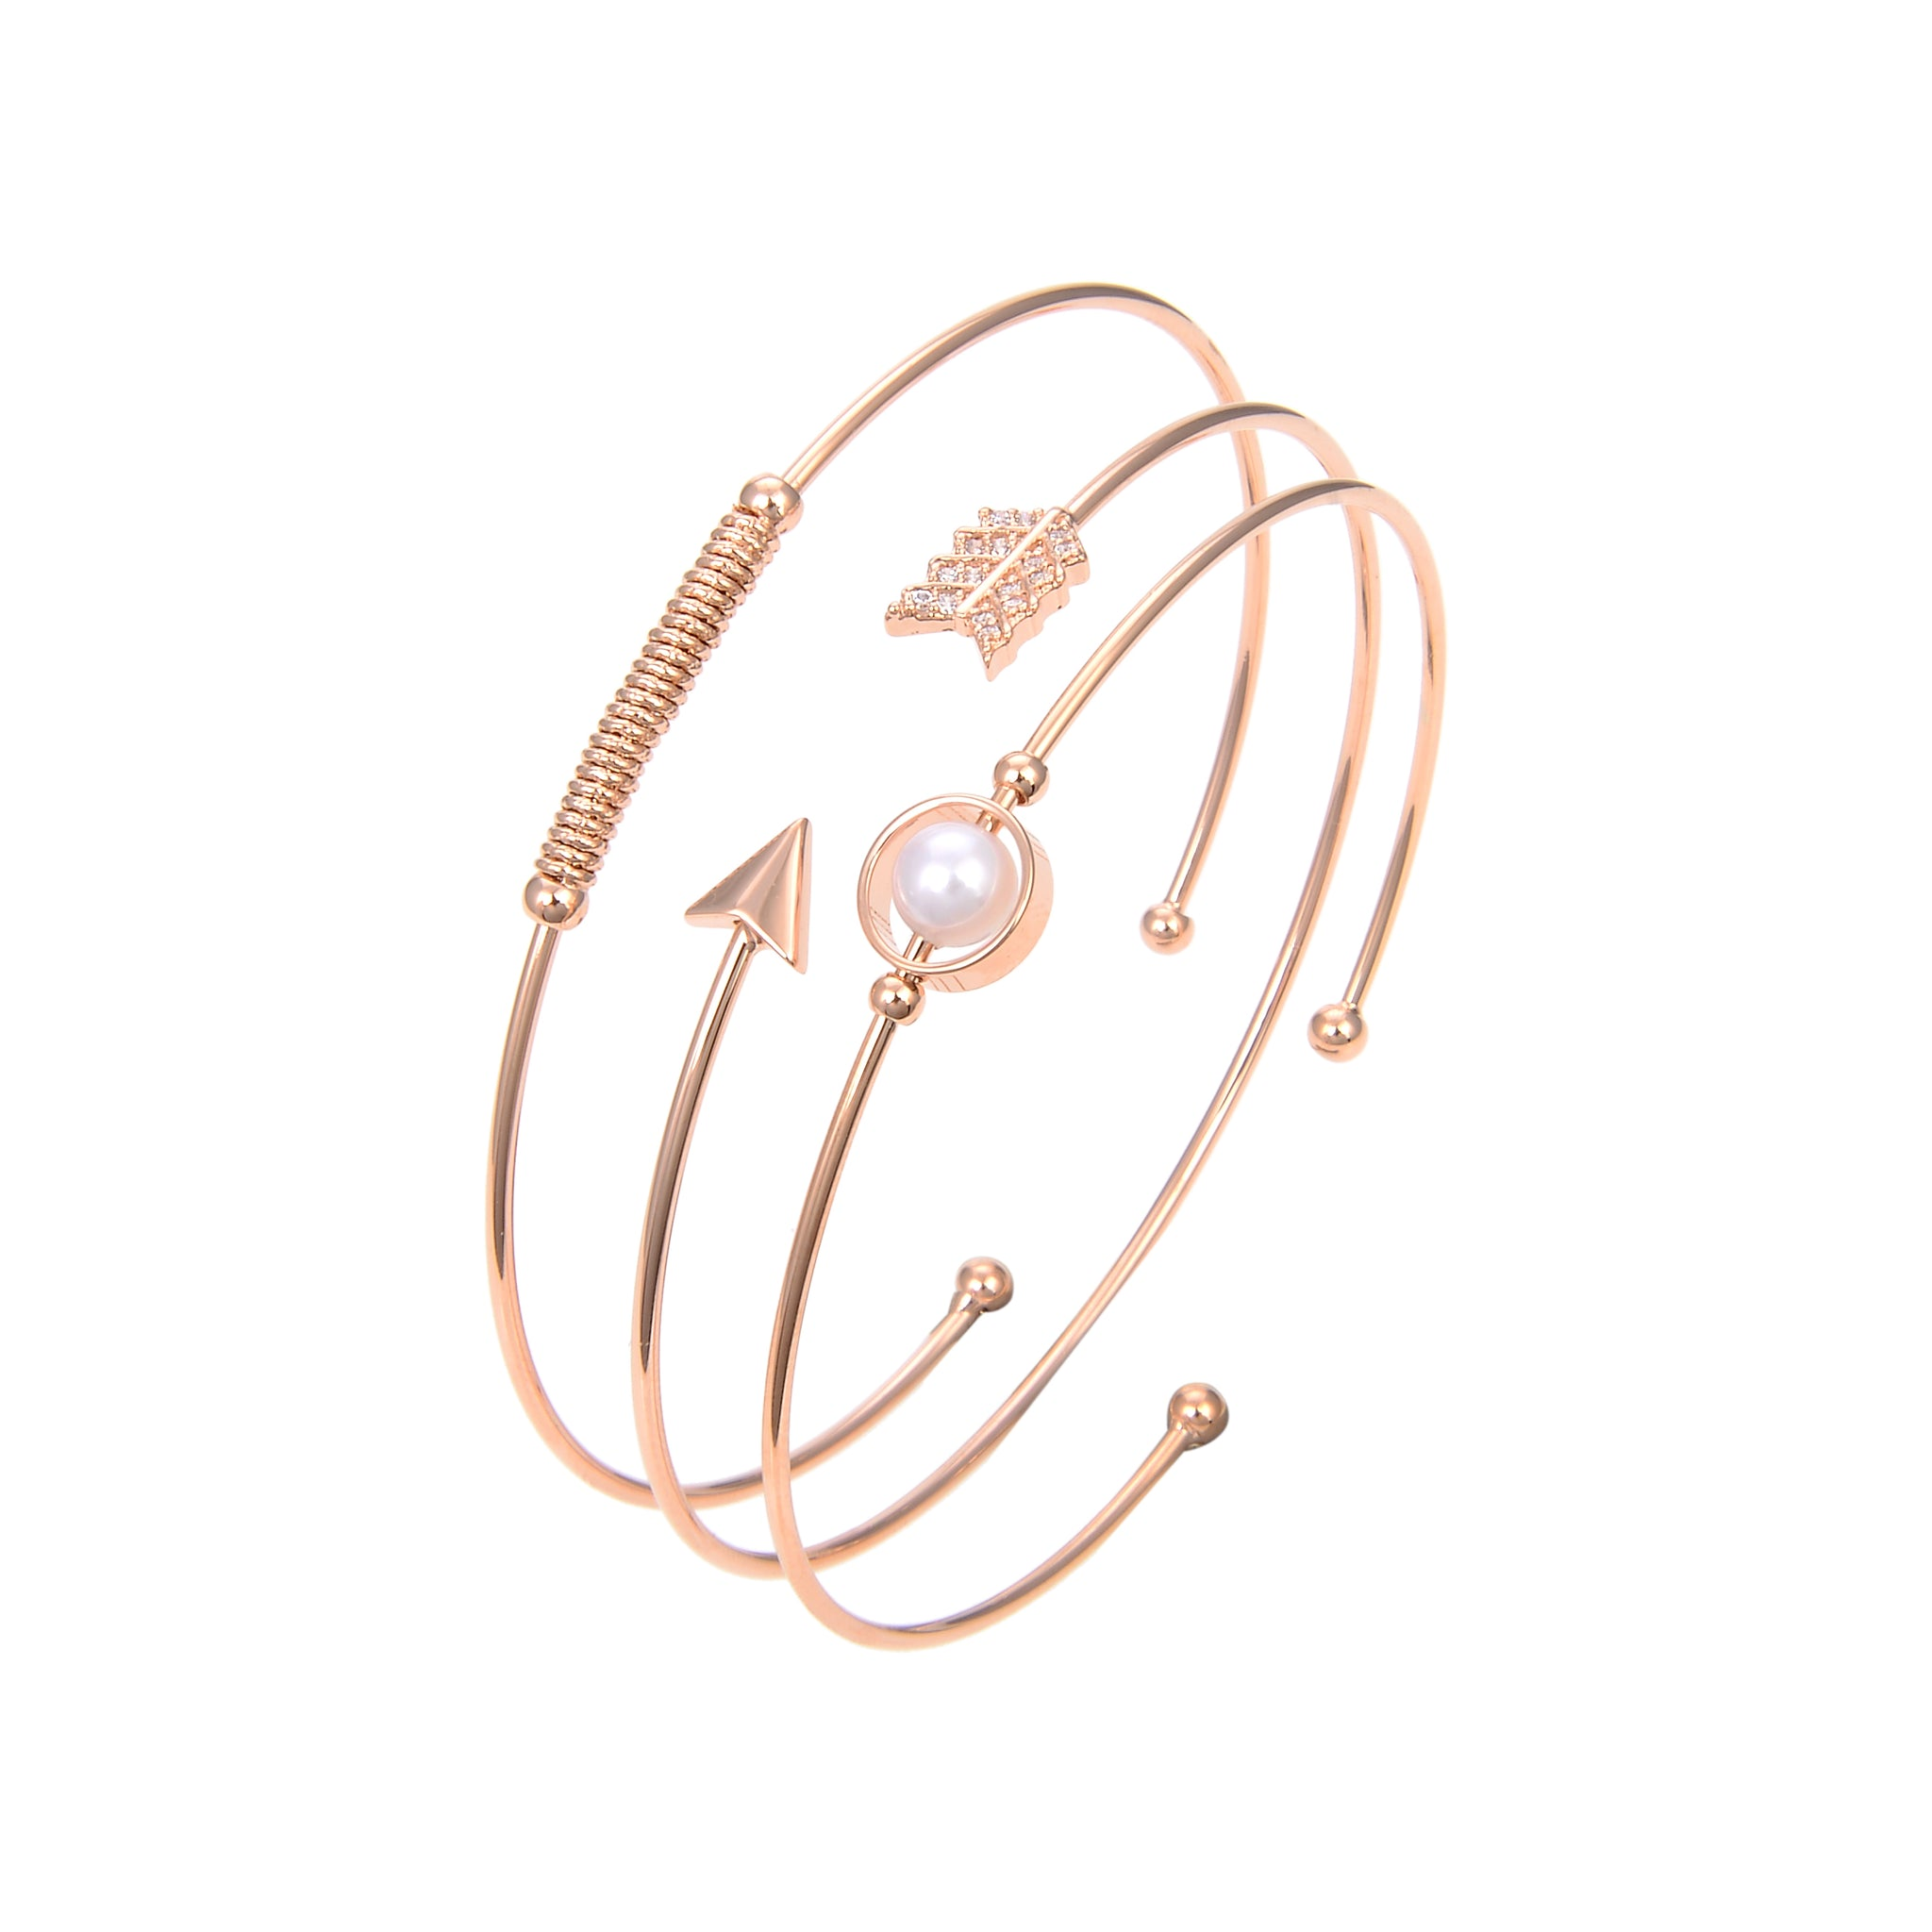 Gold Plated CZ Cubic Zirconia Bangle Bracelet, Round Arrow Shape CZ With Pearl Bangle Bracelet